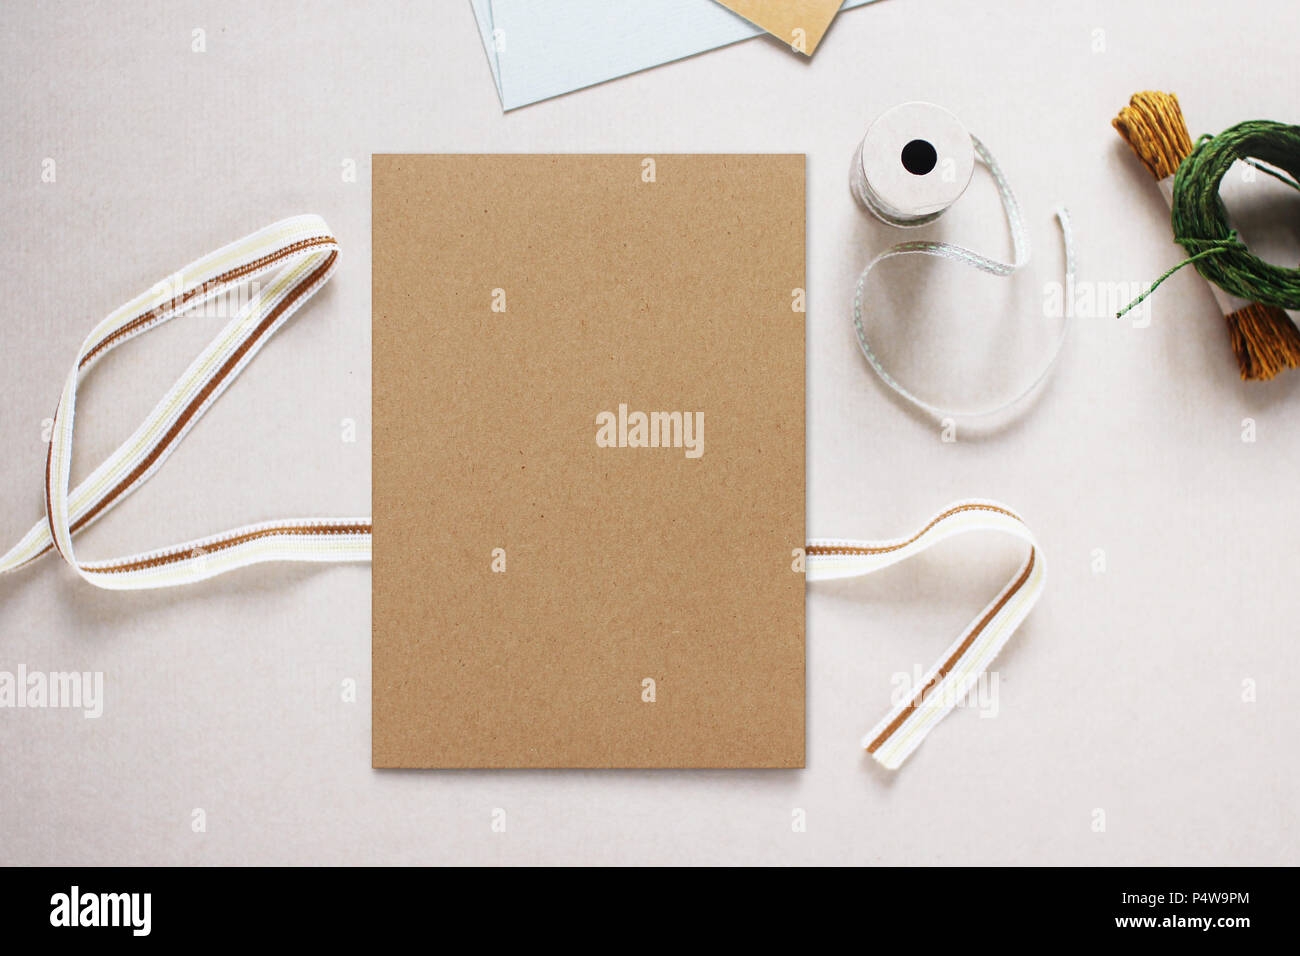 Mockup Image Of Brown Paper Invitation Card Surrounded By Craft